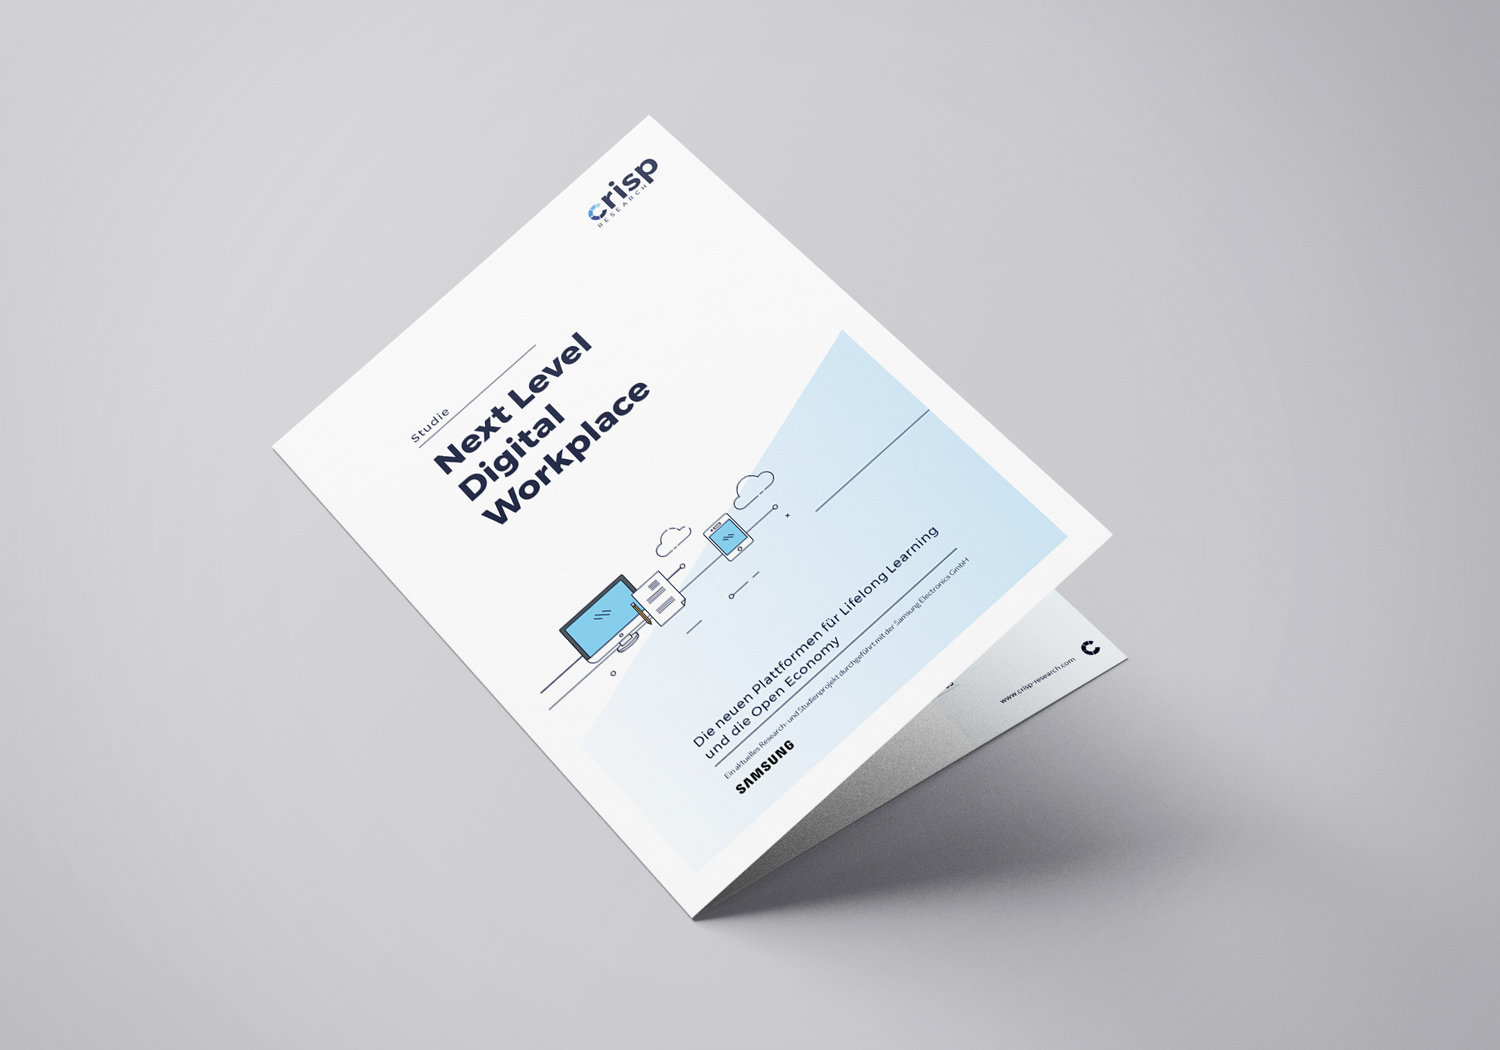 crisp studie samsung work life new research titel